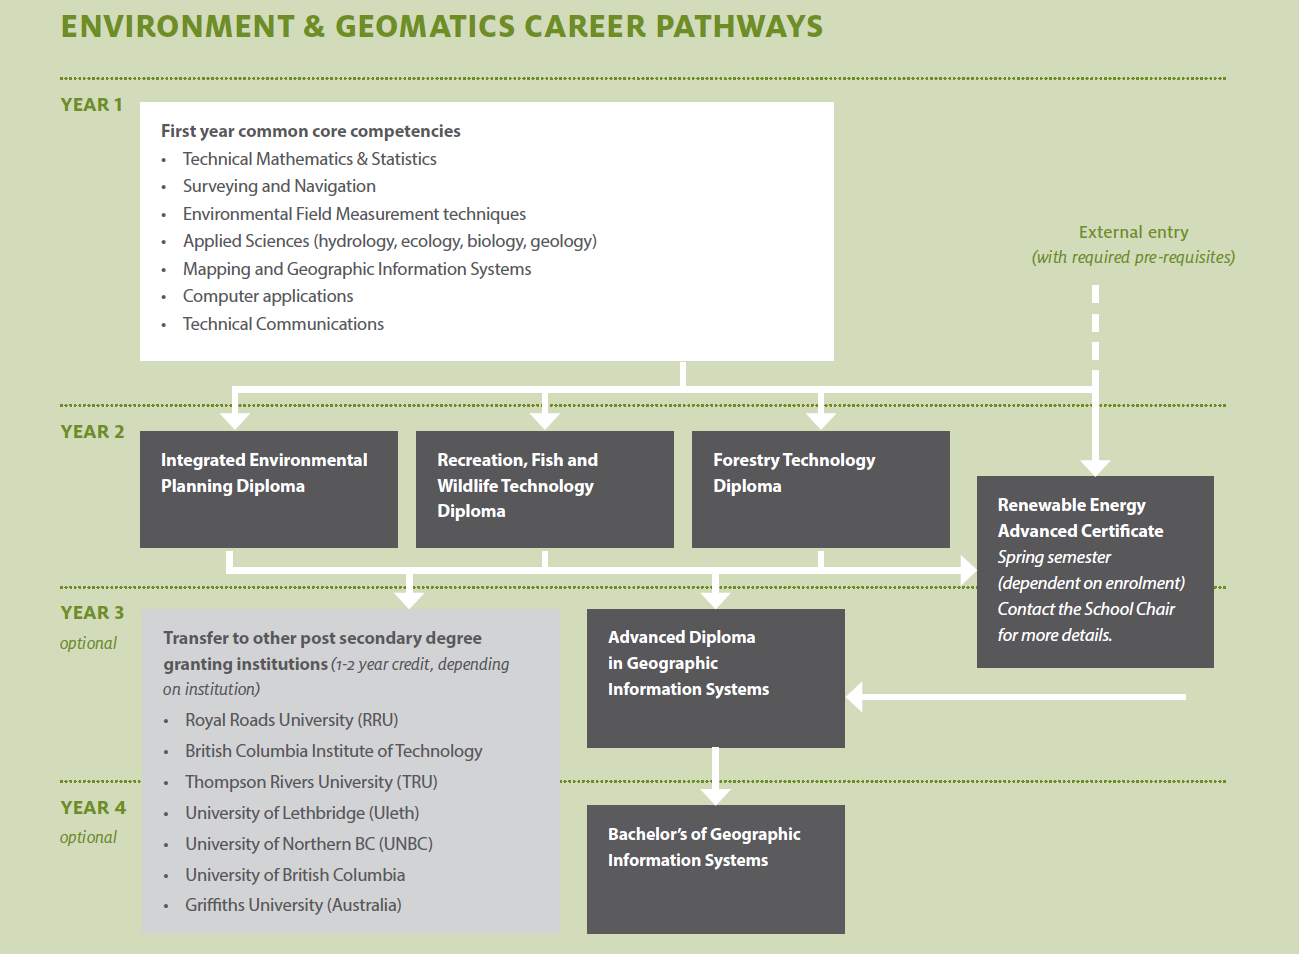 environment and geomatics career pathways